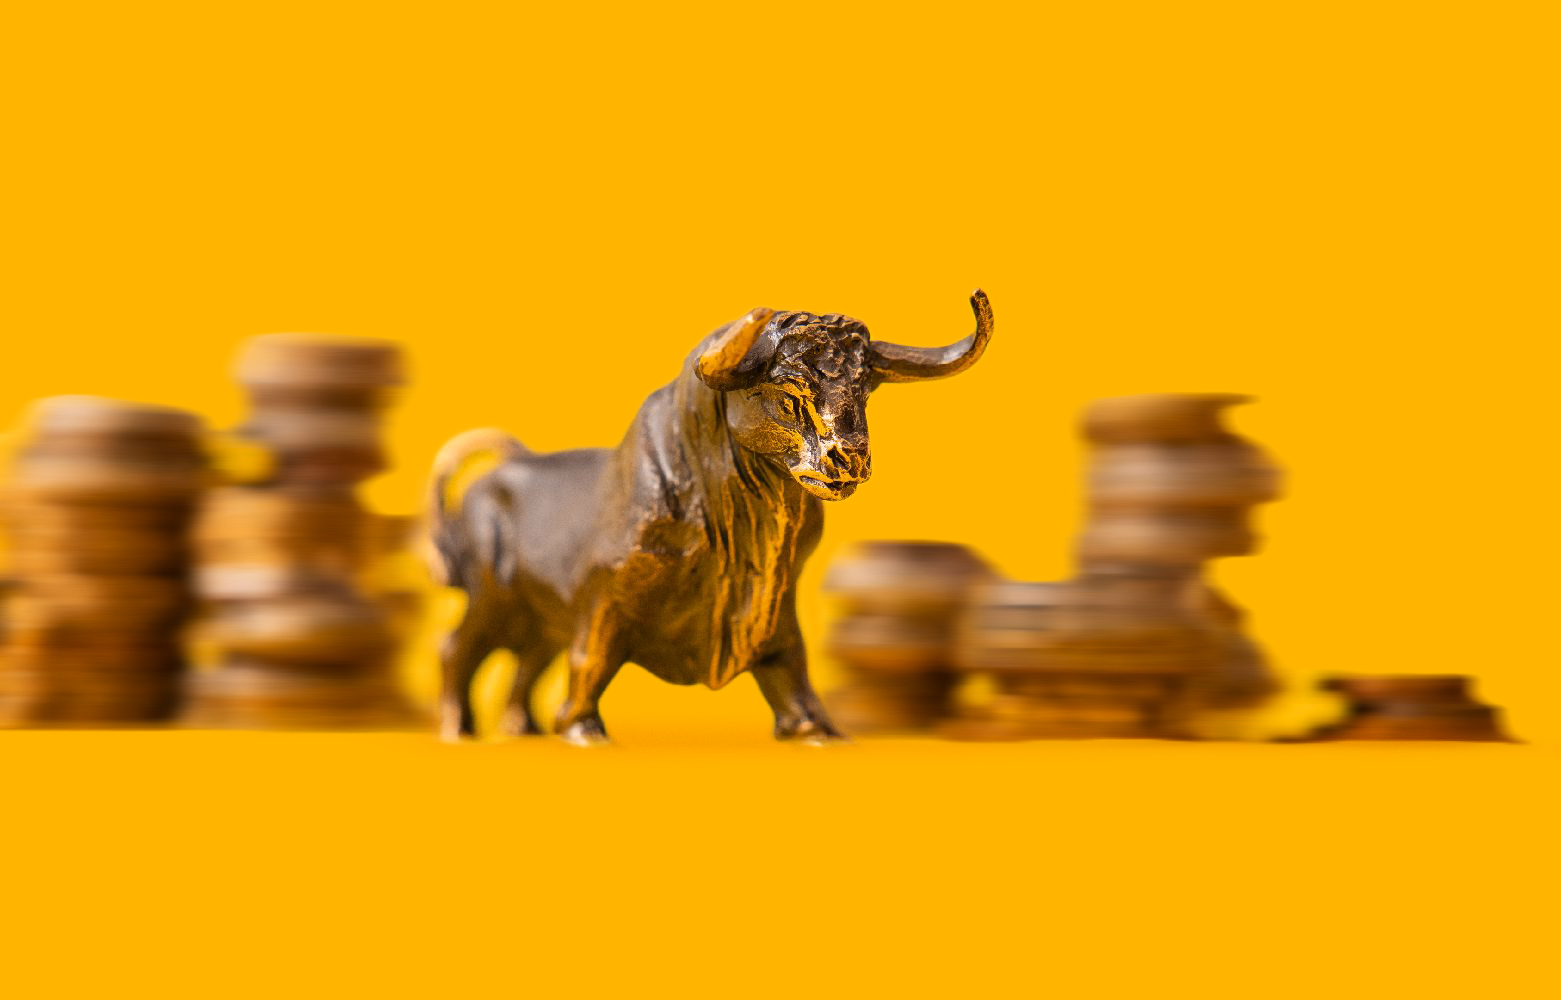 A bull figurine in front of stacked coins on a yellow background